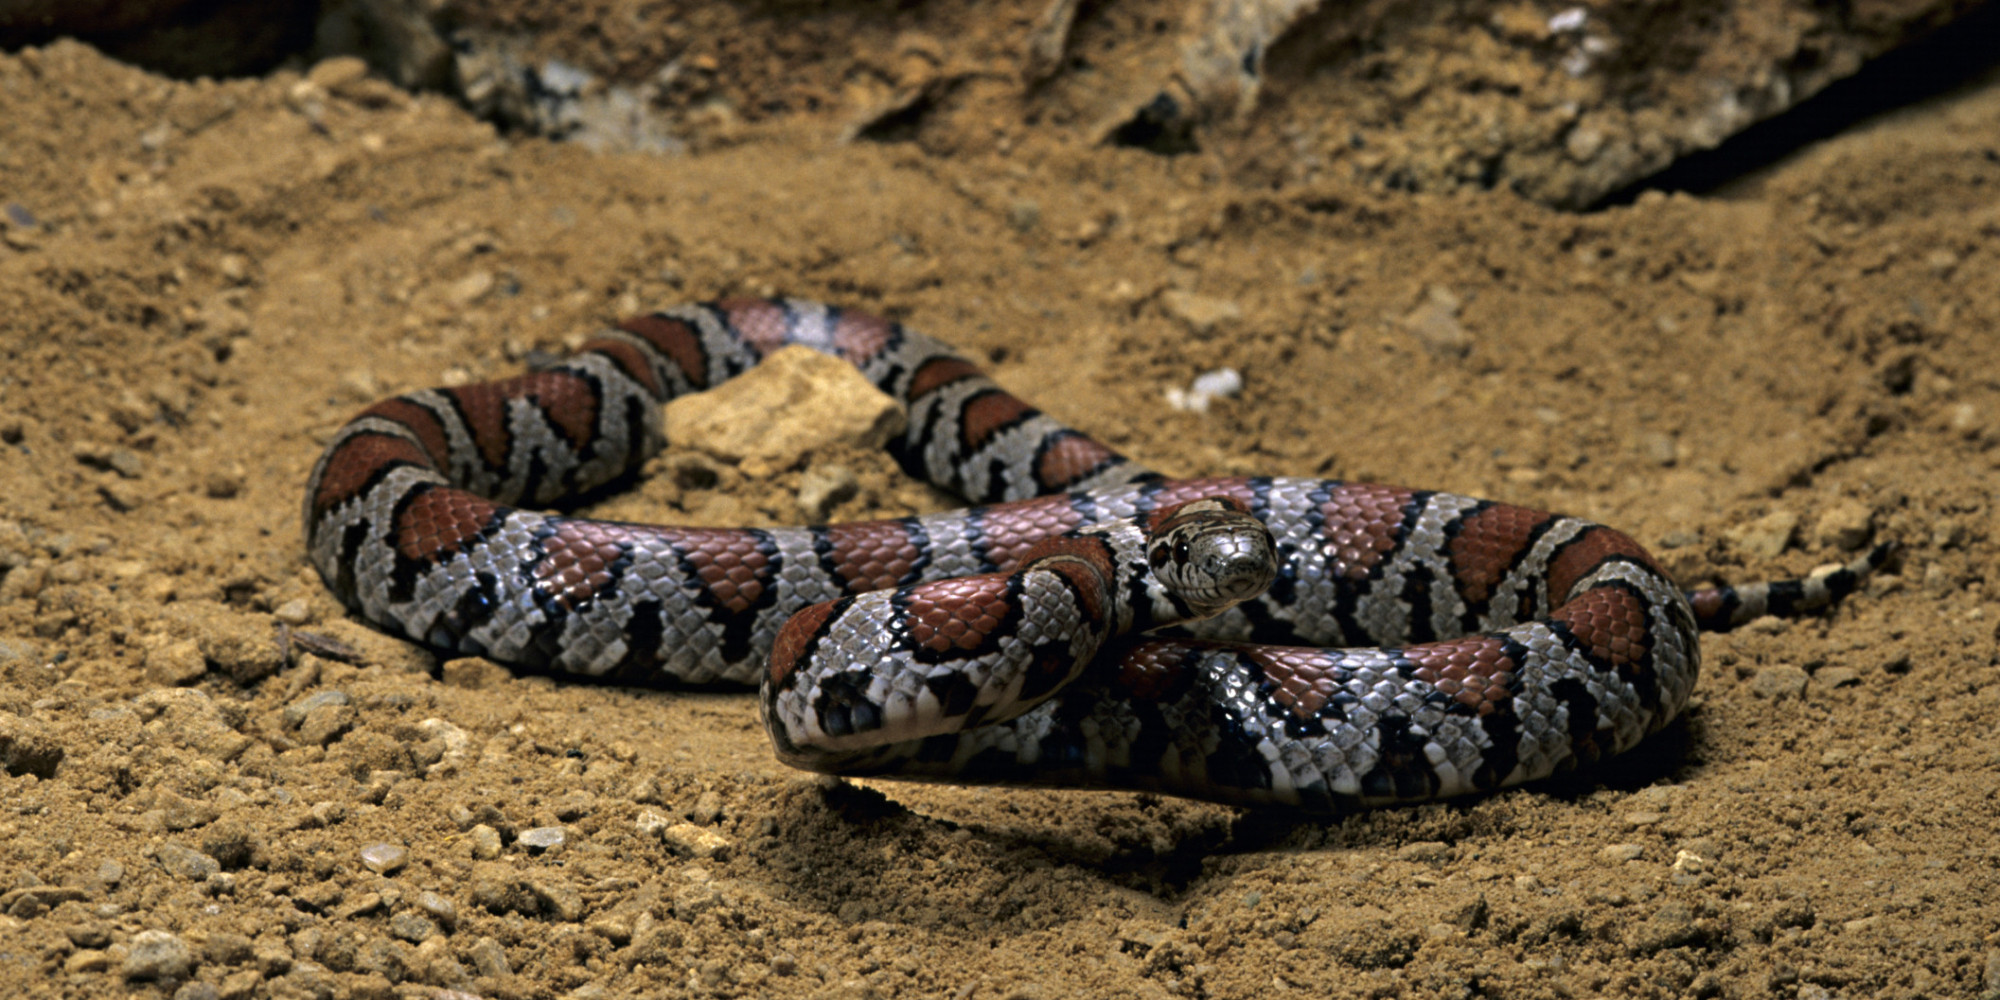 Snakes Stress And Brain Science HuffPost